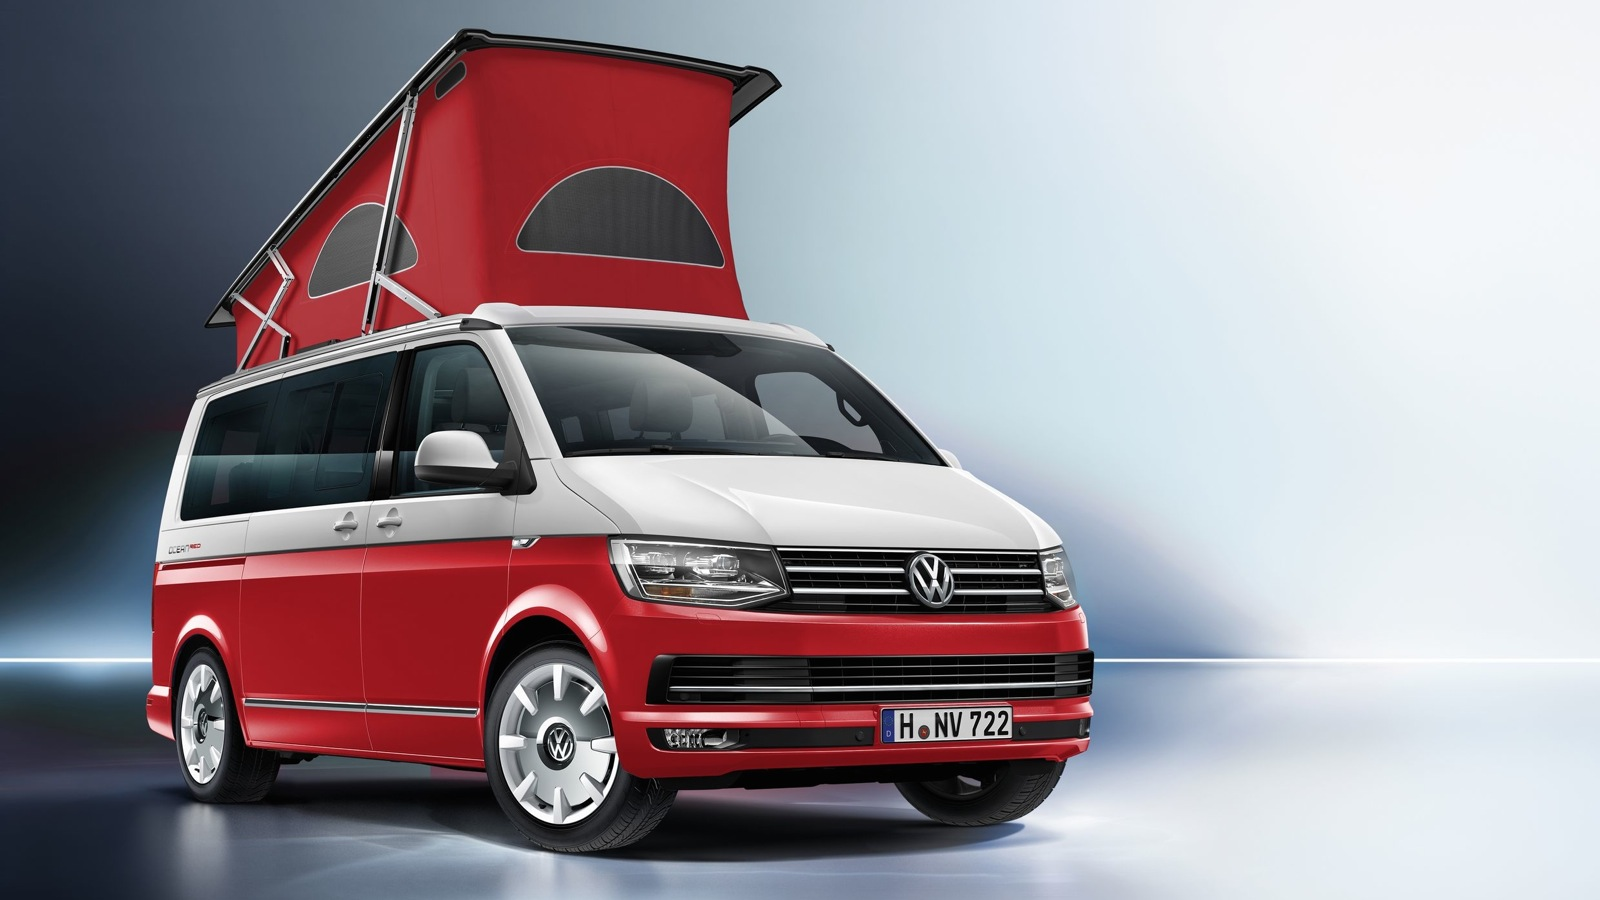 Vw Campervan Accessories >> Volkswagen California campervan under consideration for Australia - photos | CarAdvice